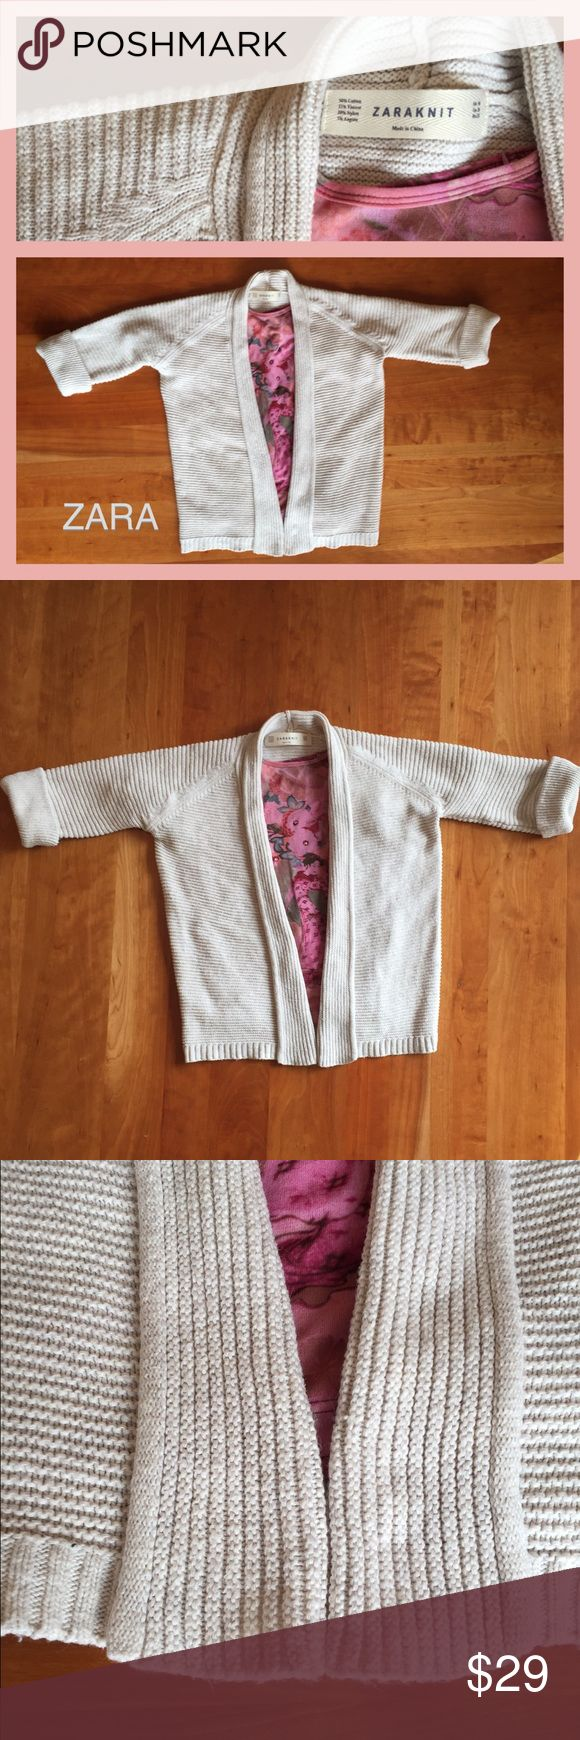 """ZARAKNIT Open Front Cream Cardigan w/  3/4 sleeves Knitted ribbed sweater with 50% Cotton, 25% Viscose, 20% Nylon, 5% Angora yarn. Measurements = Armpit to Armpit laying flat (not stretched) is approximately 20""""....Shoulder to hem approx 21 1/2"""". Gently preloved condition. Gently cold water wash, dry flat. Zara Sweaters Cardigans"""